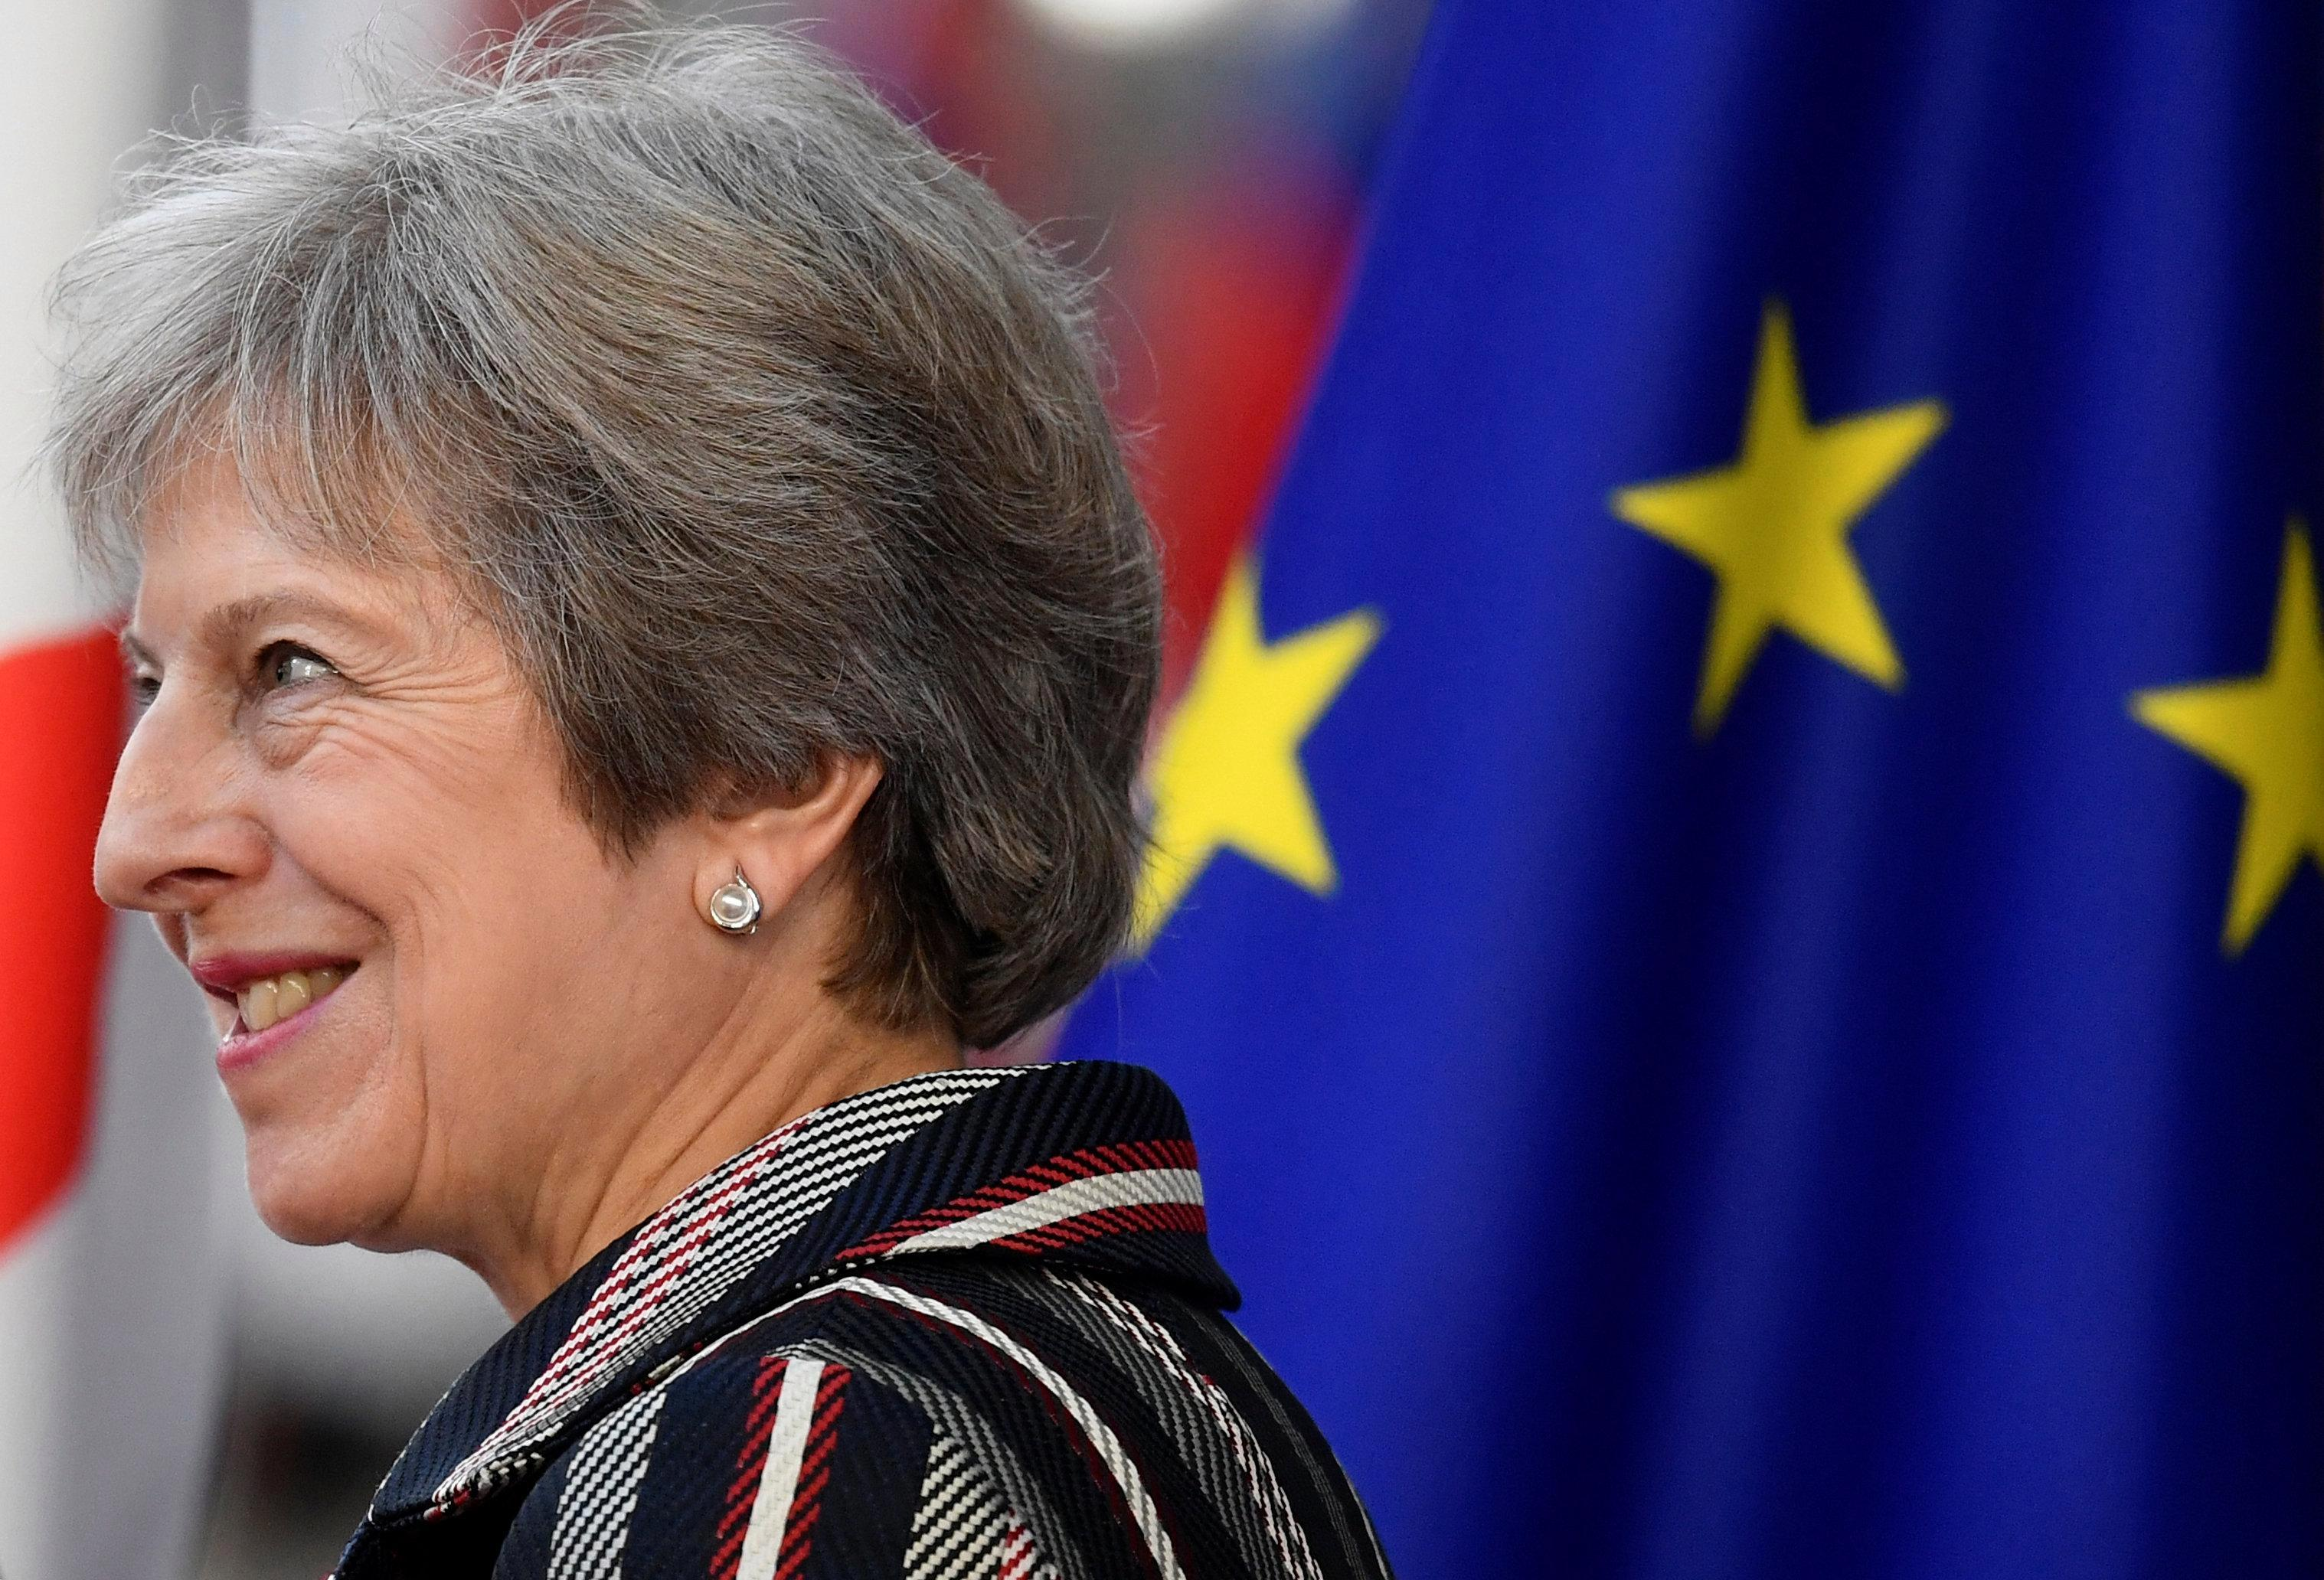 The key Brexit dates in 2018 and 2019 – from the EU summit to the end of the transition period